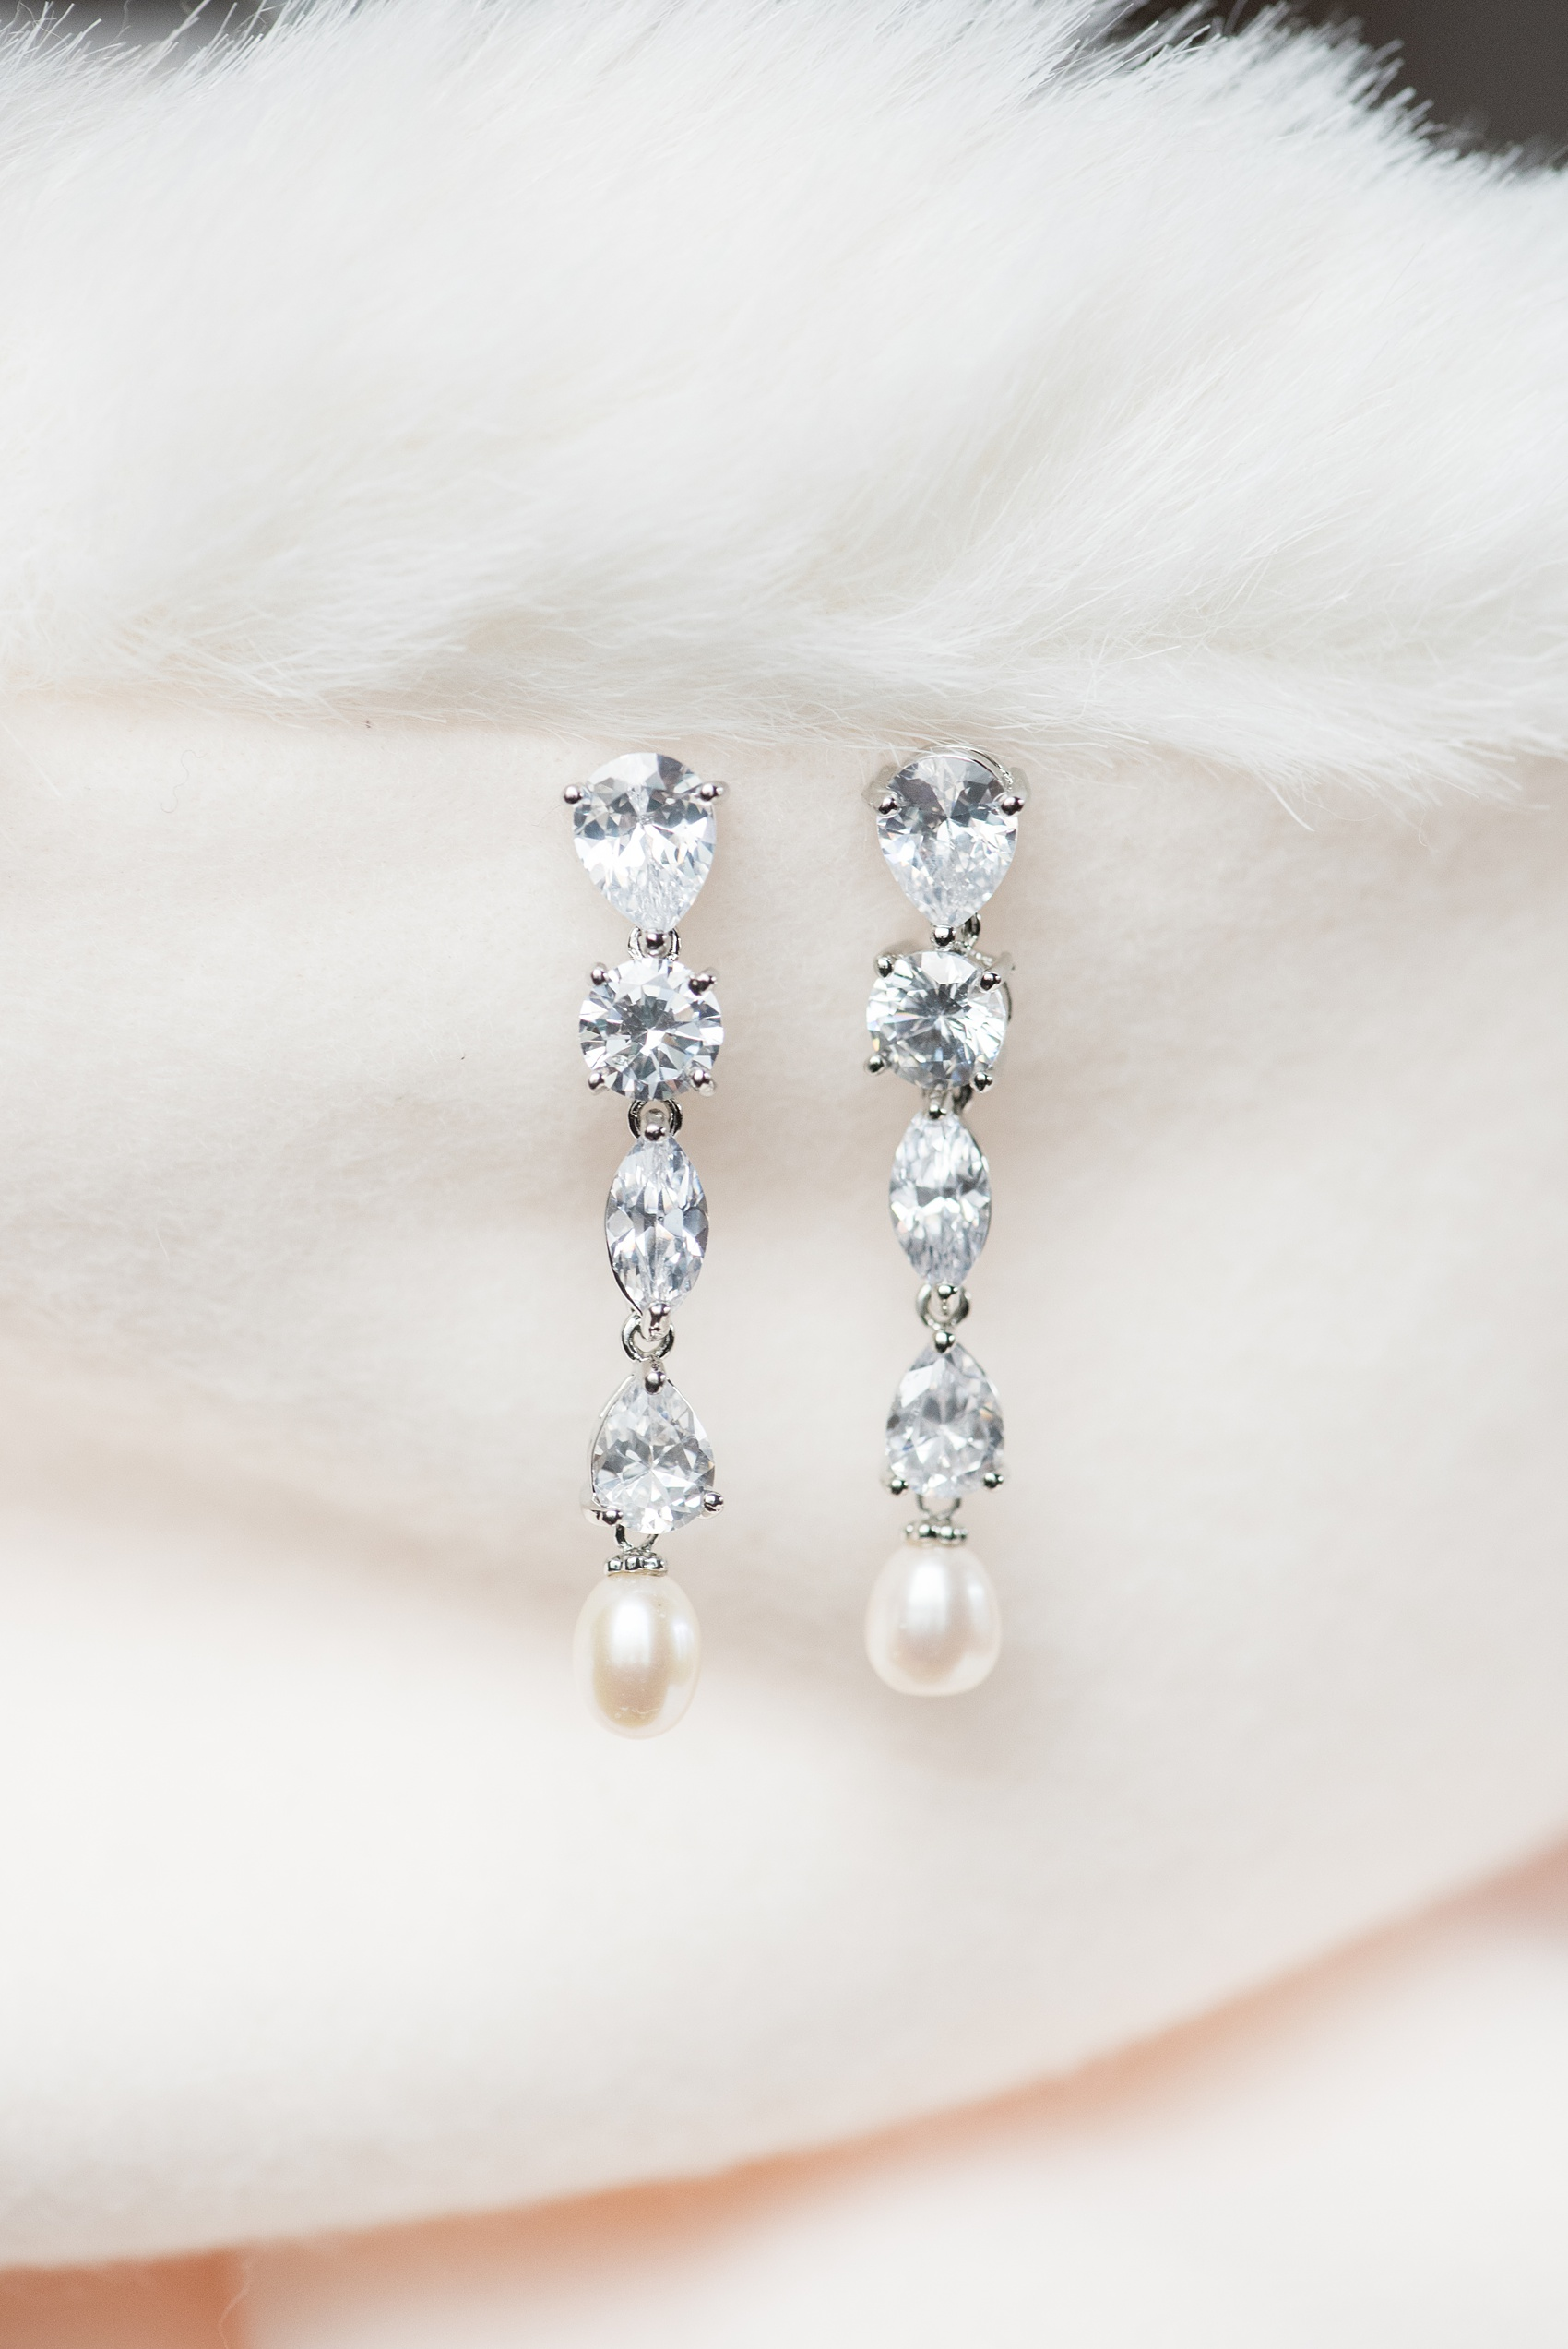 Durham wedding photos at The Cookery by Mikkel Paige Photography in North Carolina. This detail picture shows the bride's diamond and pearl hanging earrings.